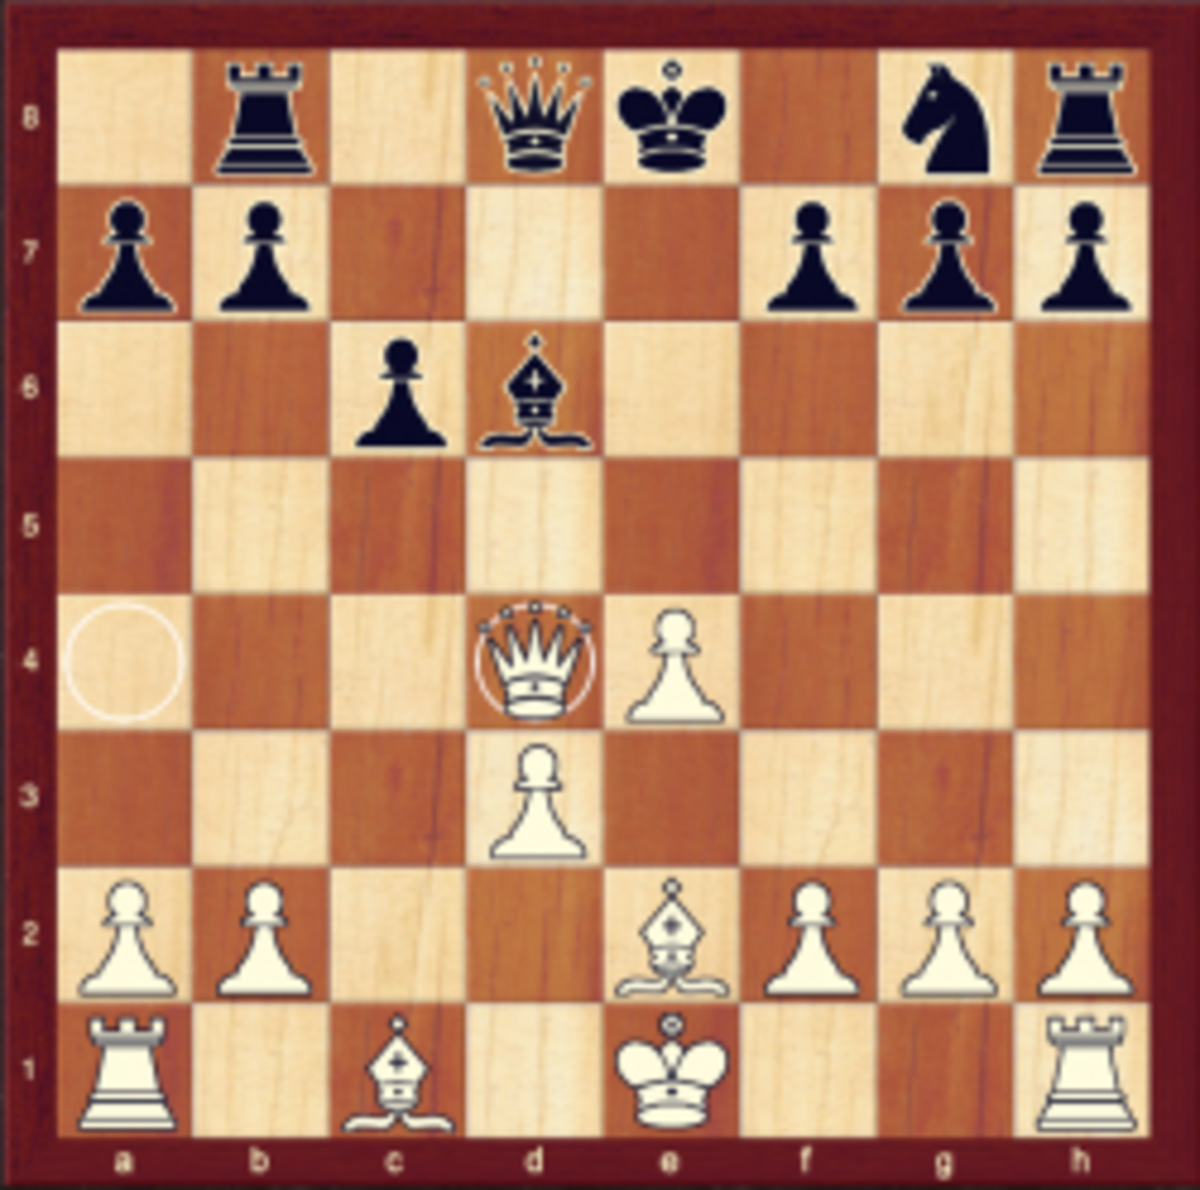 Black loses a pawn after playing 4..d4?!